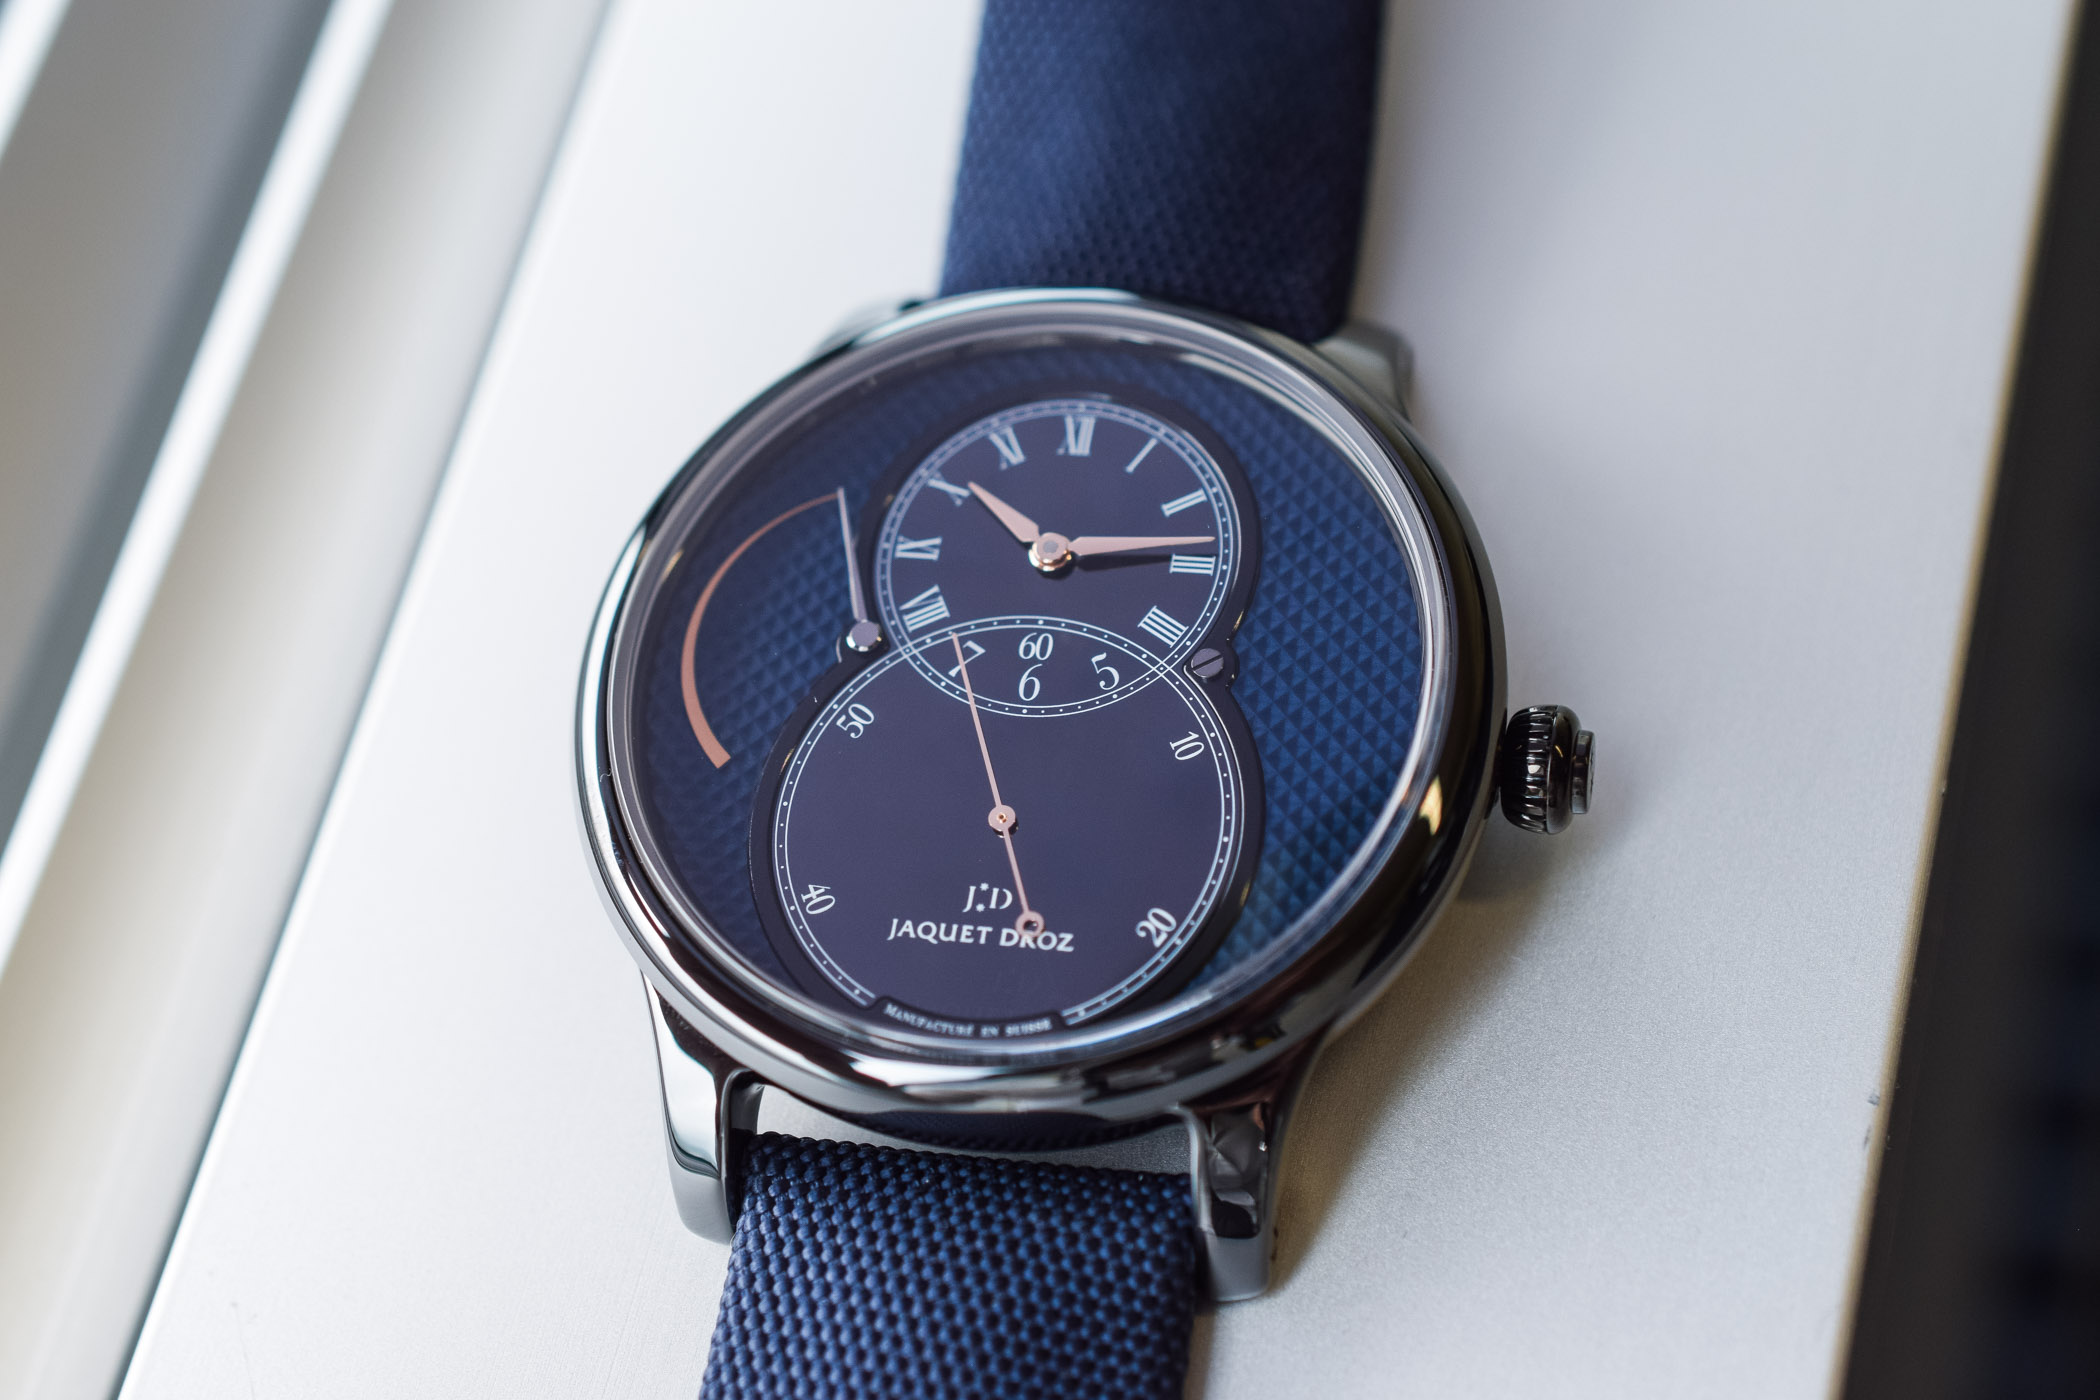 Jaquet-Droz Grande Seconde Power-Reserve Ceramic Clou De Paris 2018